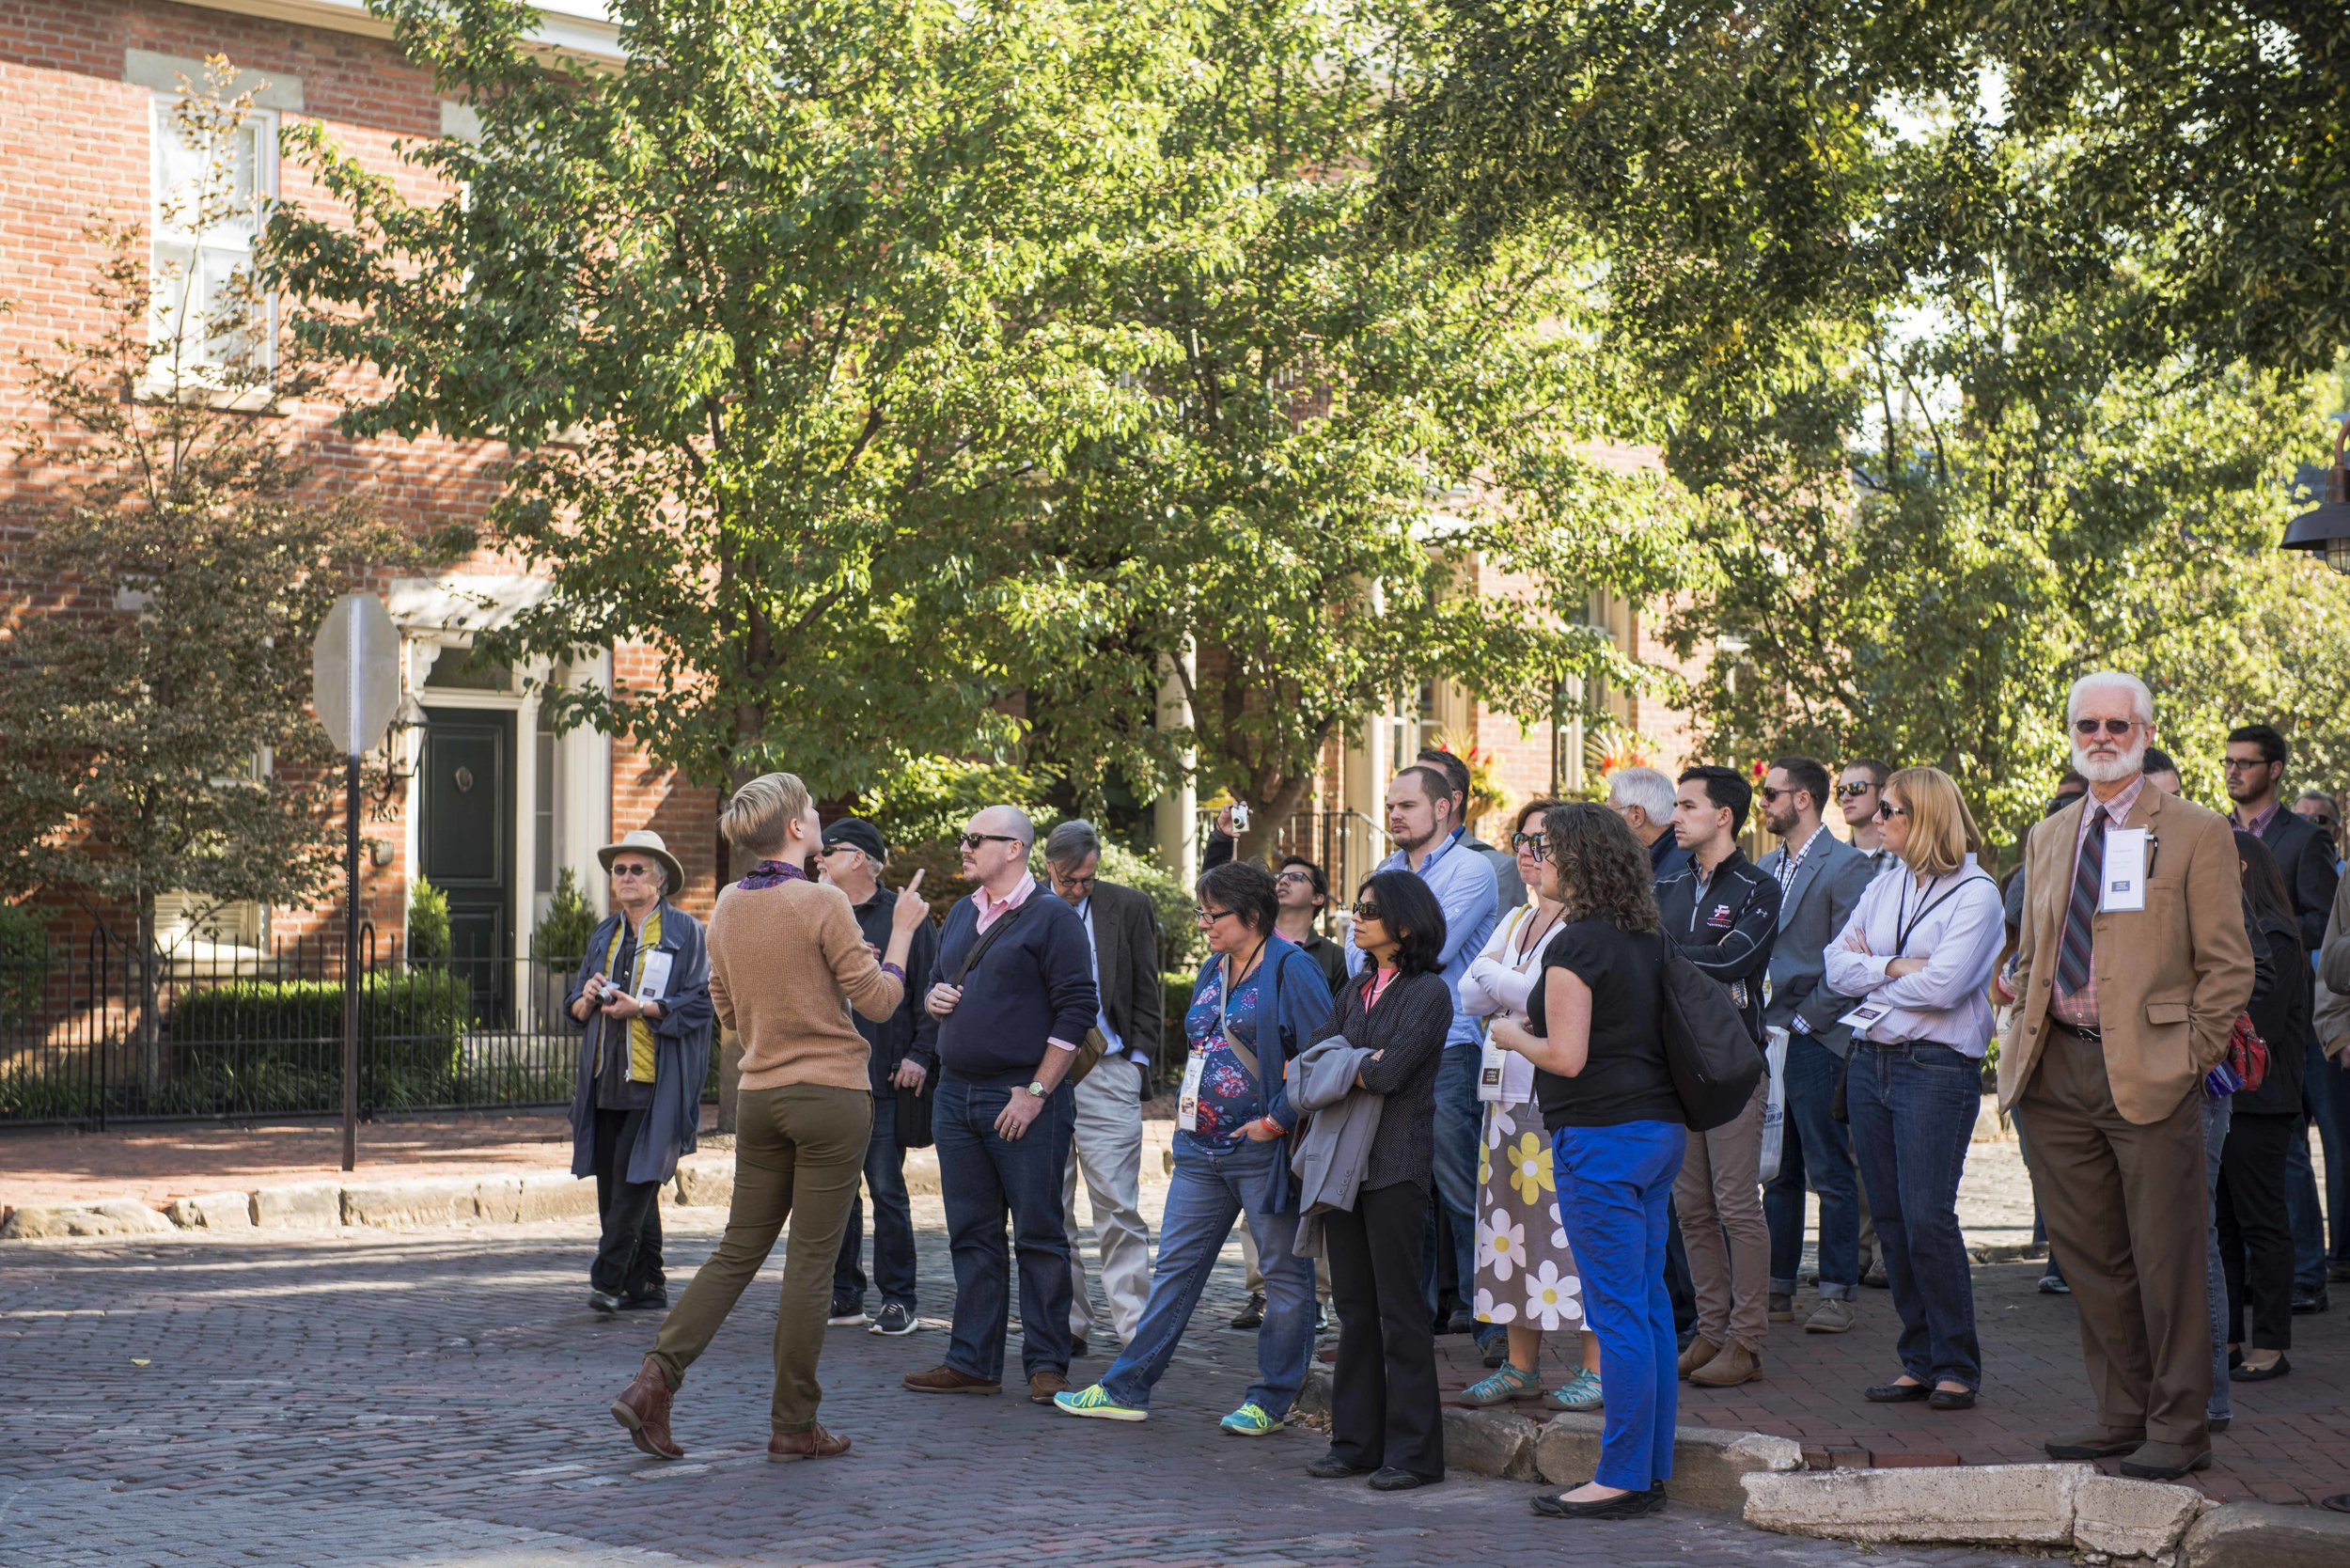 Leading a tour in the German Village historic district for the 2014 Great Placemakers Lab conference.